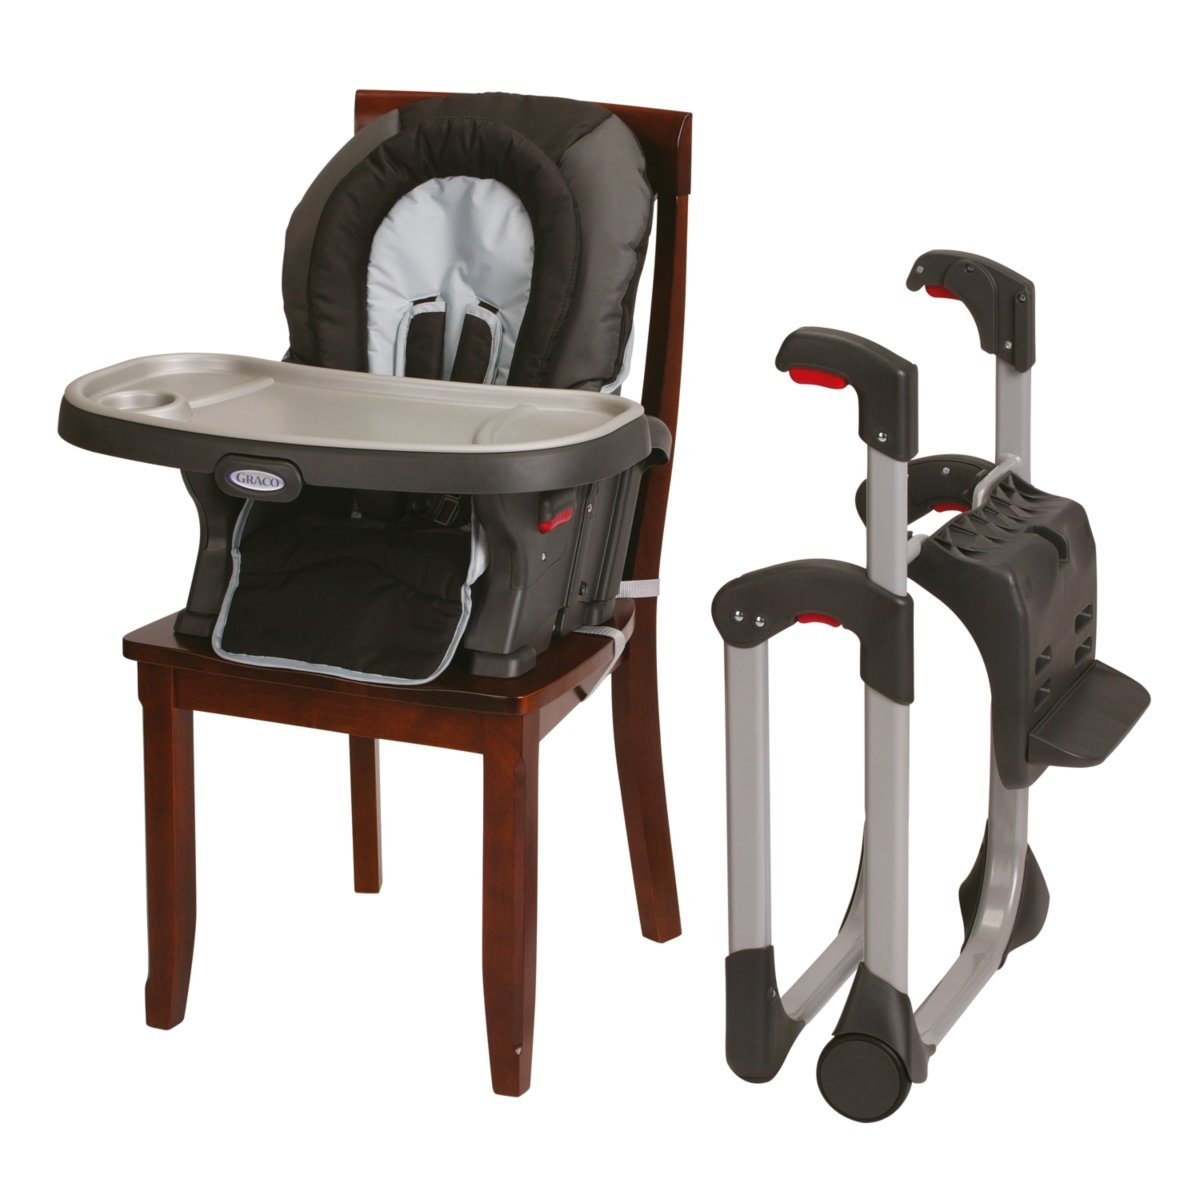 graco duodiner lx high chair costco zero gravity baby metropolis